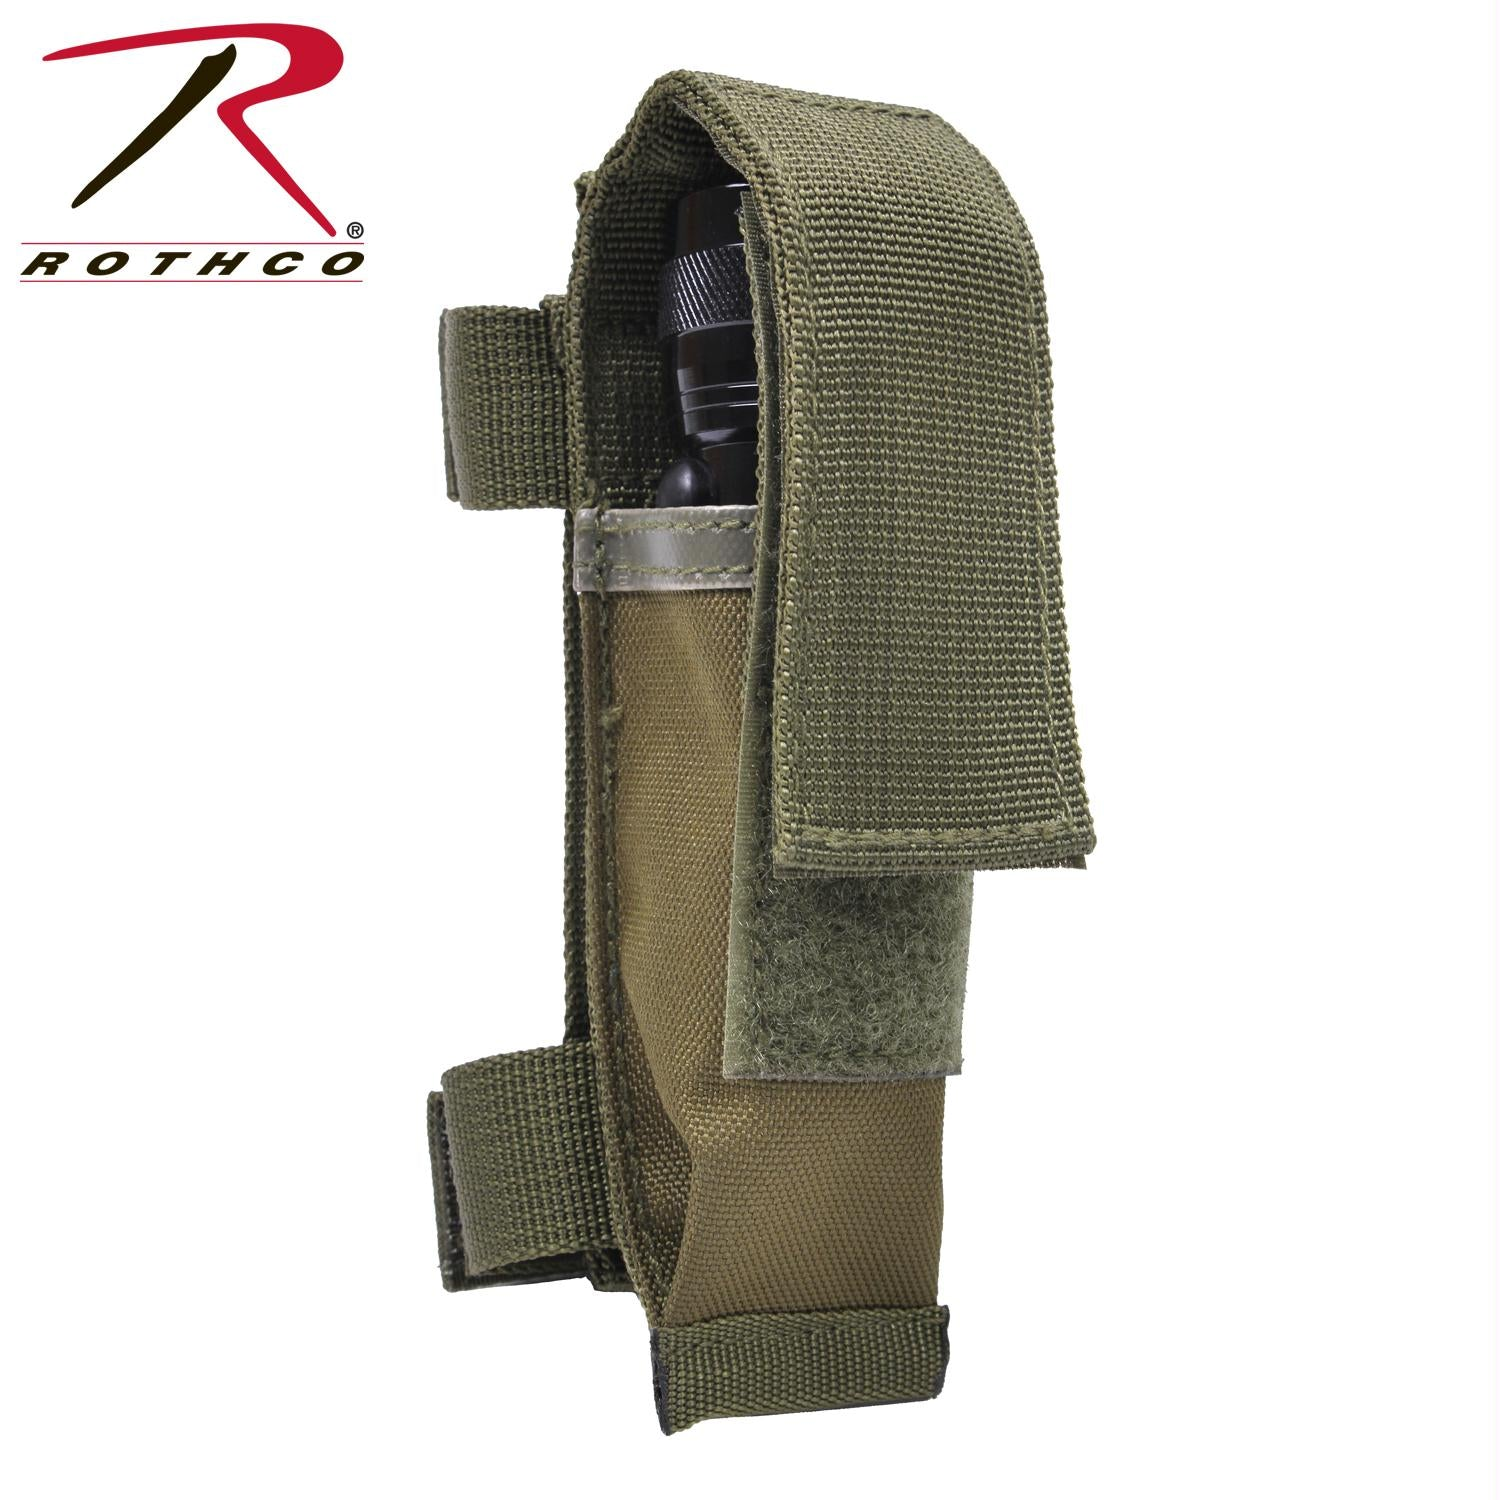 Rothco MOLLE Compatible Knife / Flashlight Sheath - Olive Drab